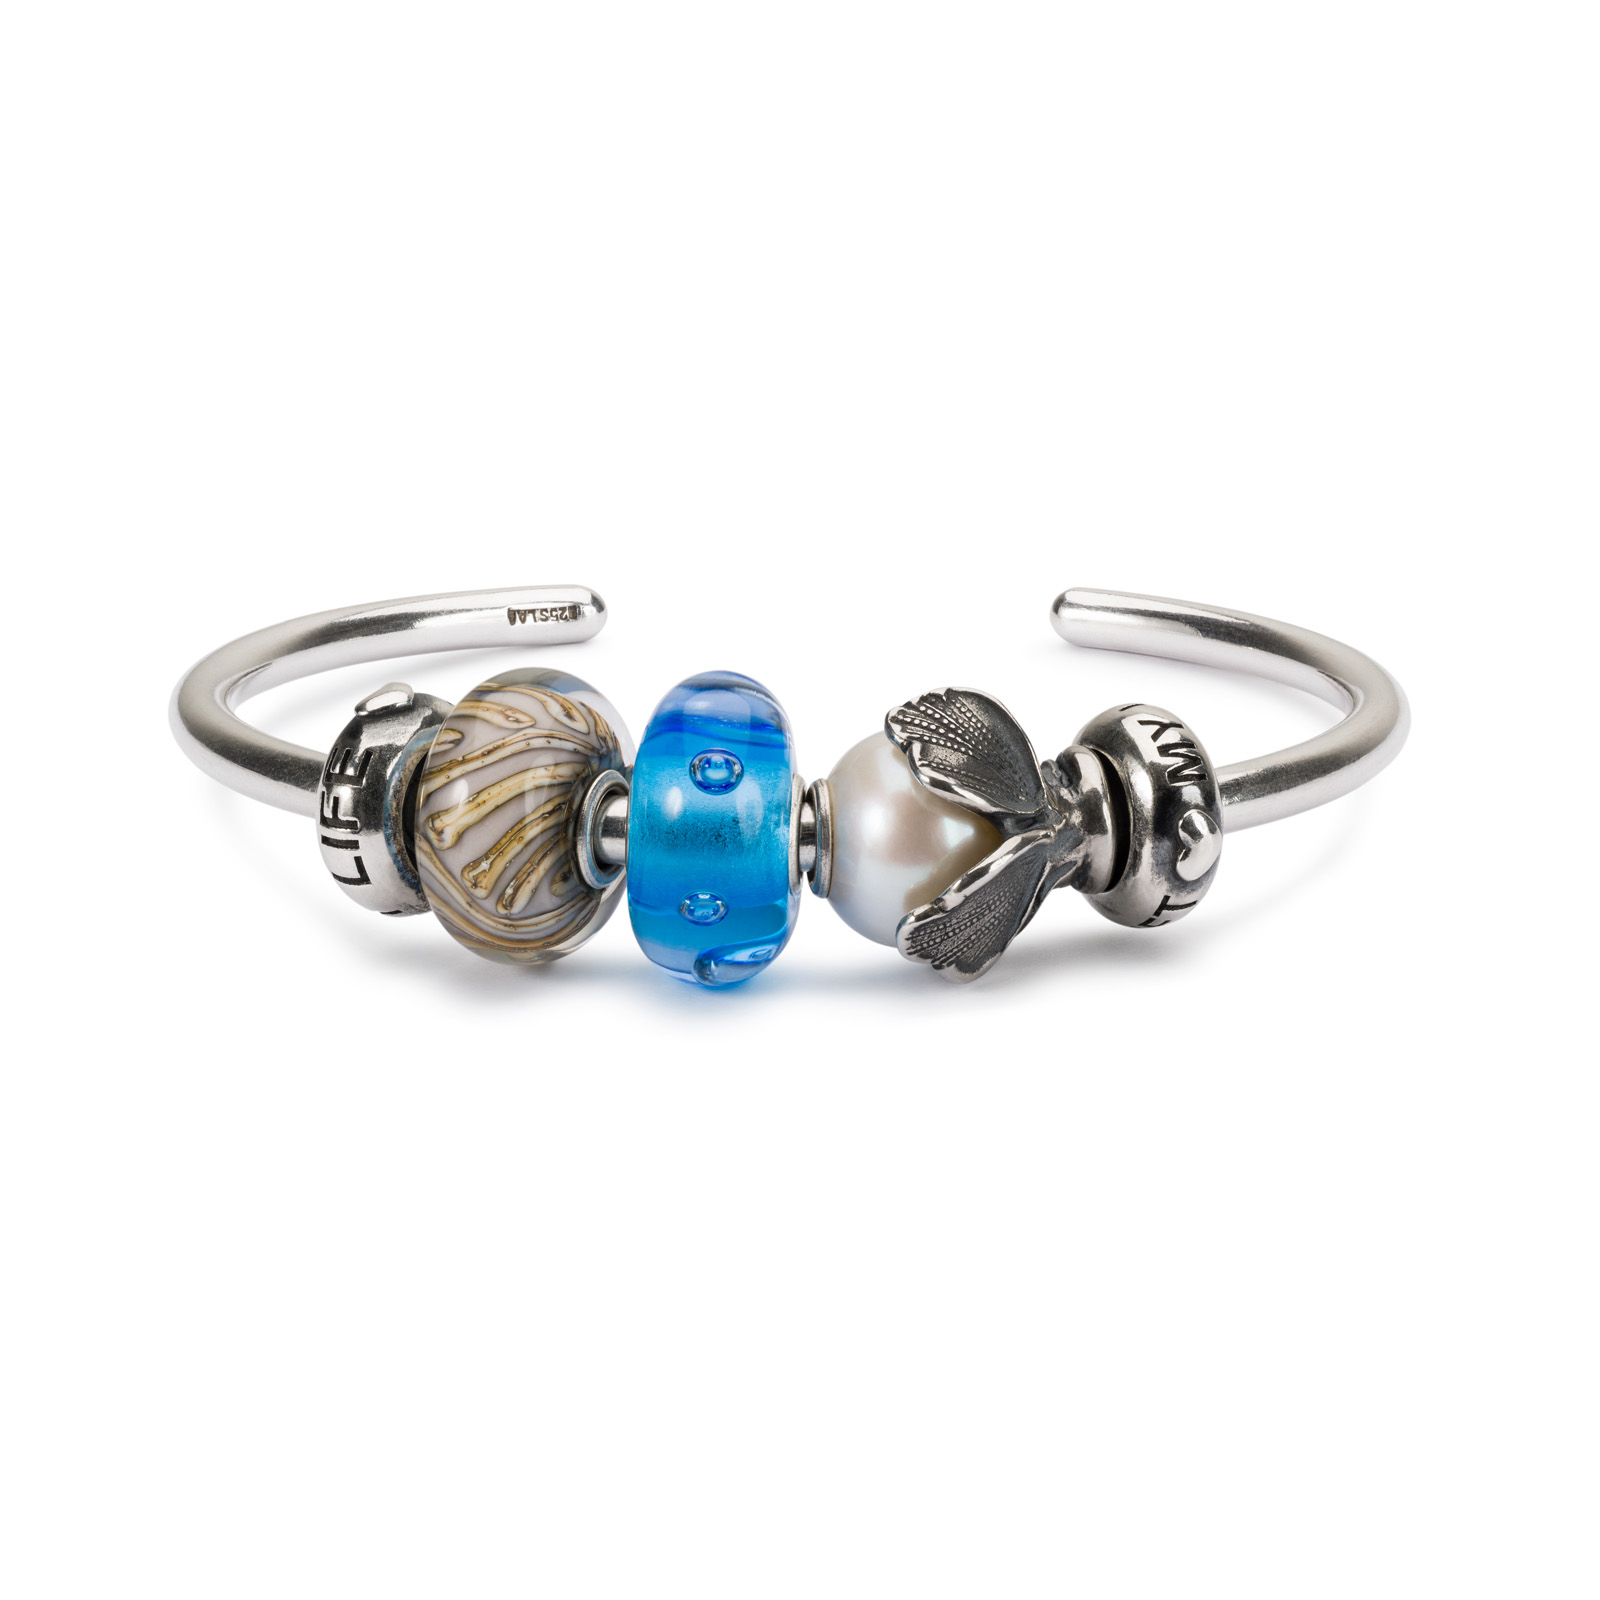 Trollbeads - New Wisdom Bangle 1